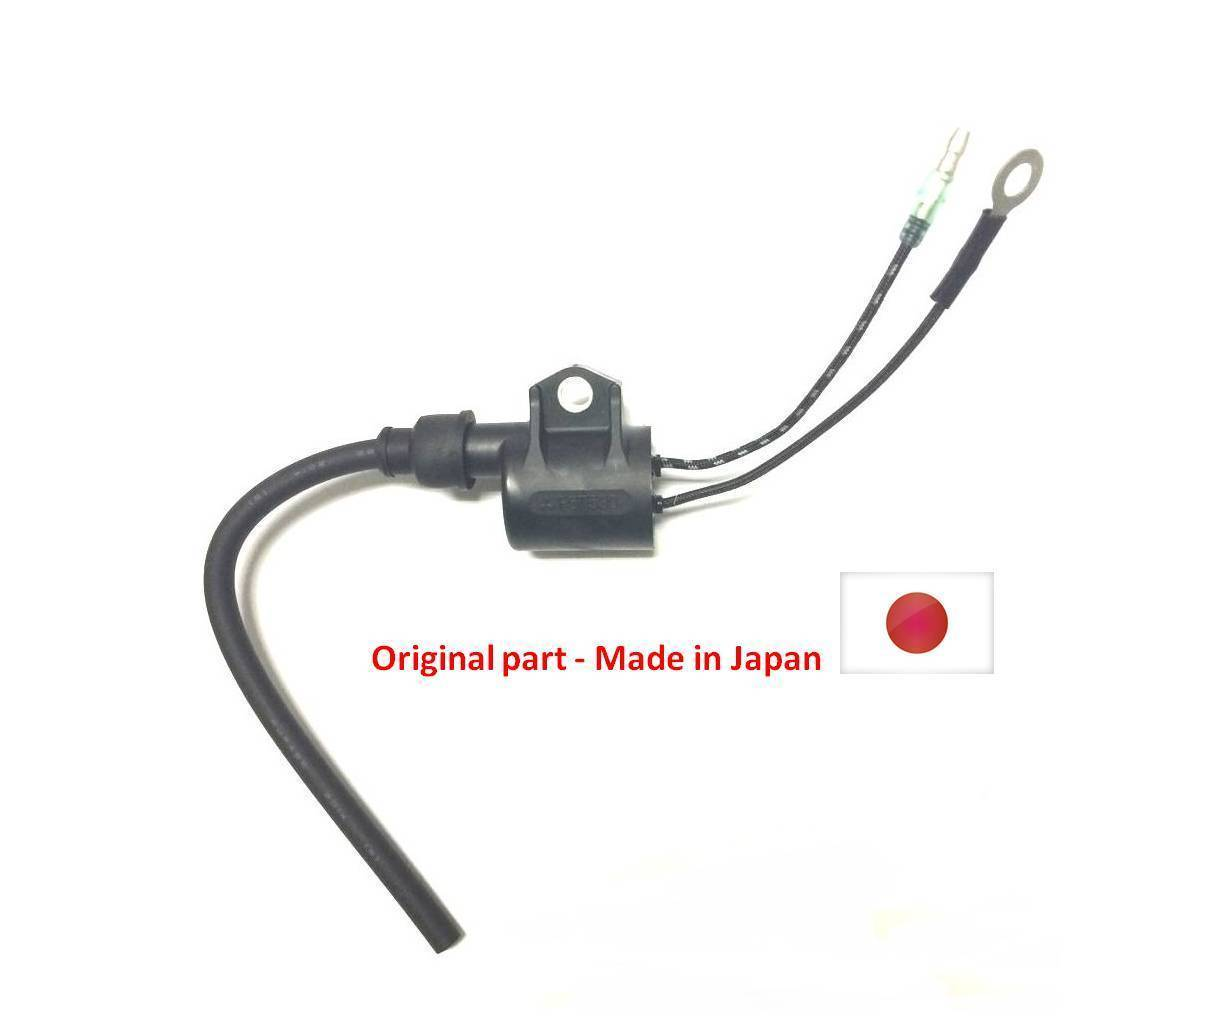 6F6-85530-01 IGNITION COIL ASSY fit Yamaha Outboard Engine E EK 40J 40G 40HP 2T